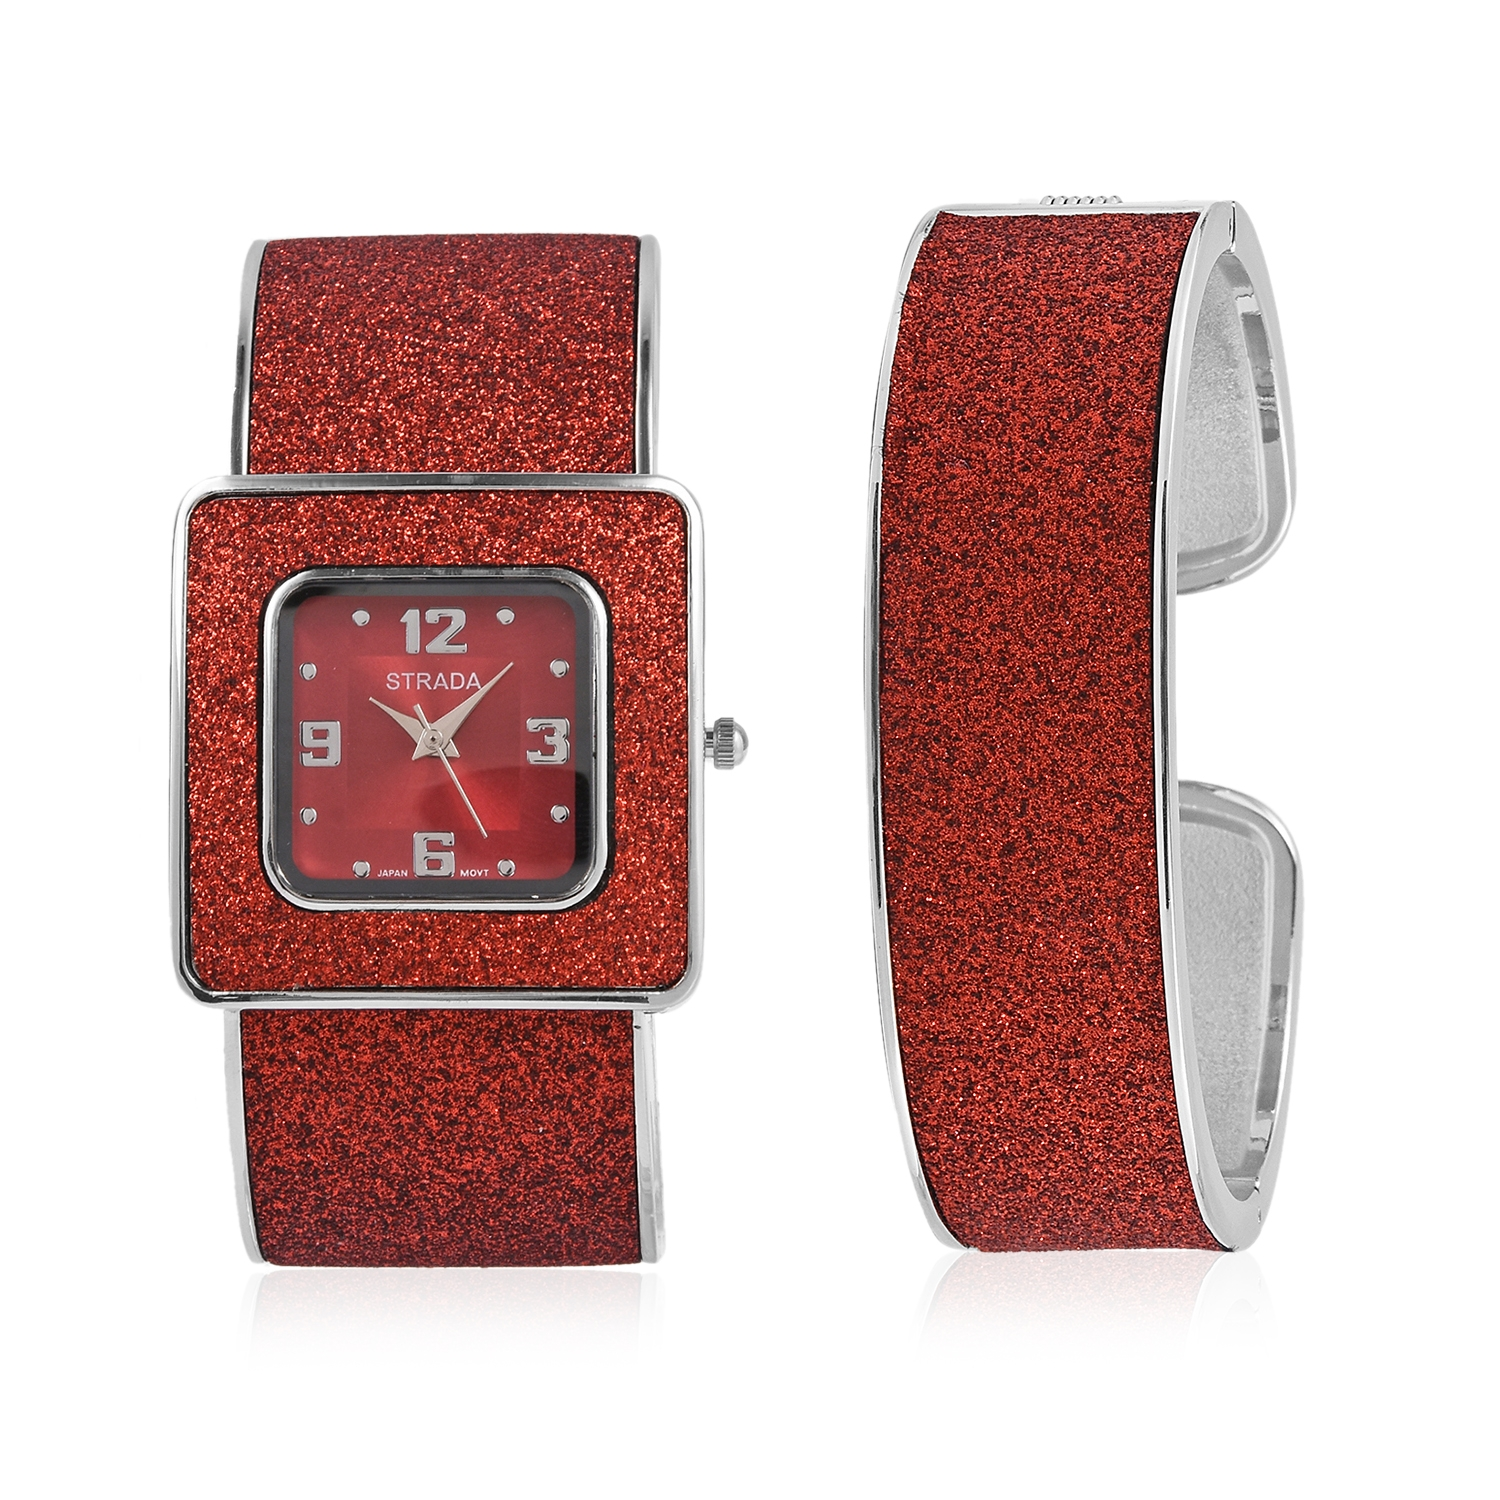 f92cfd1ce STRADA Red Stardust Japanese Movement Cuff Bracelet Watch and Cuff Bracelet  with Stainless Steel Back in Silvertone | Shop LC